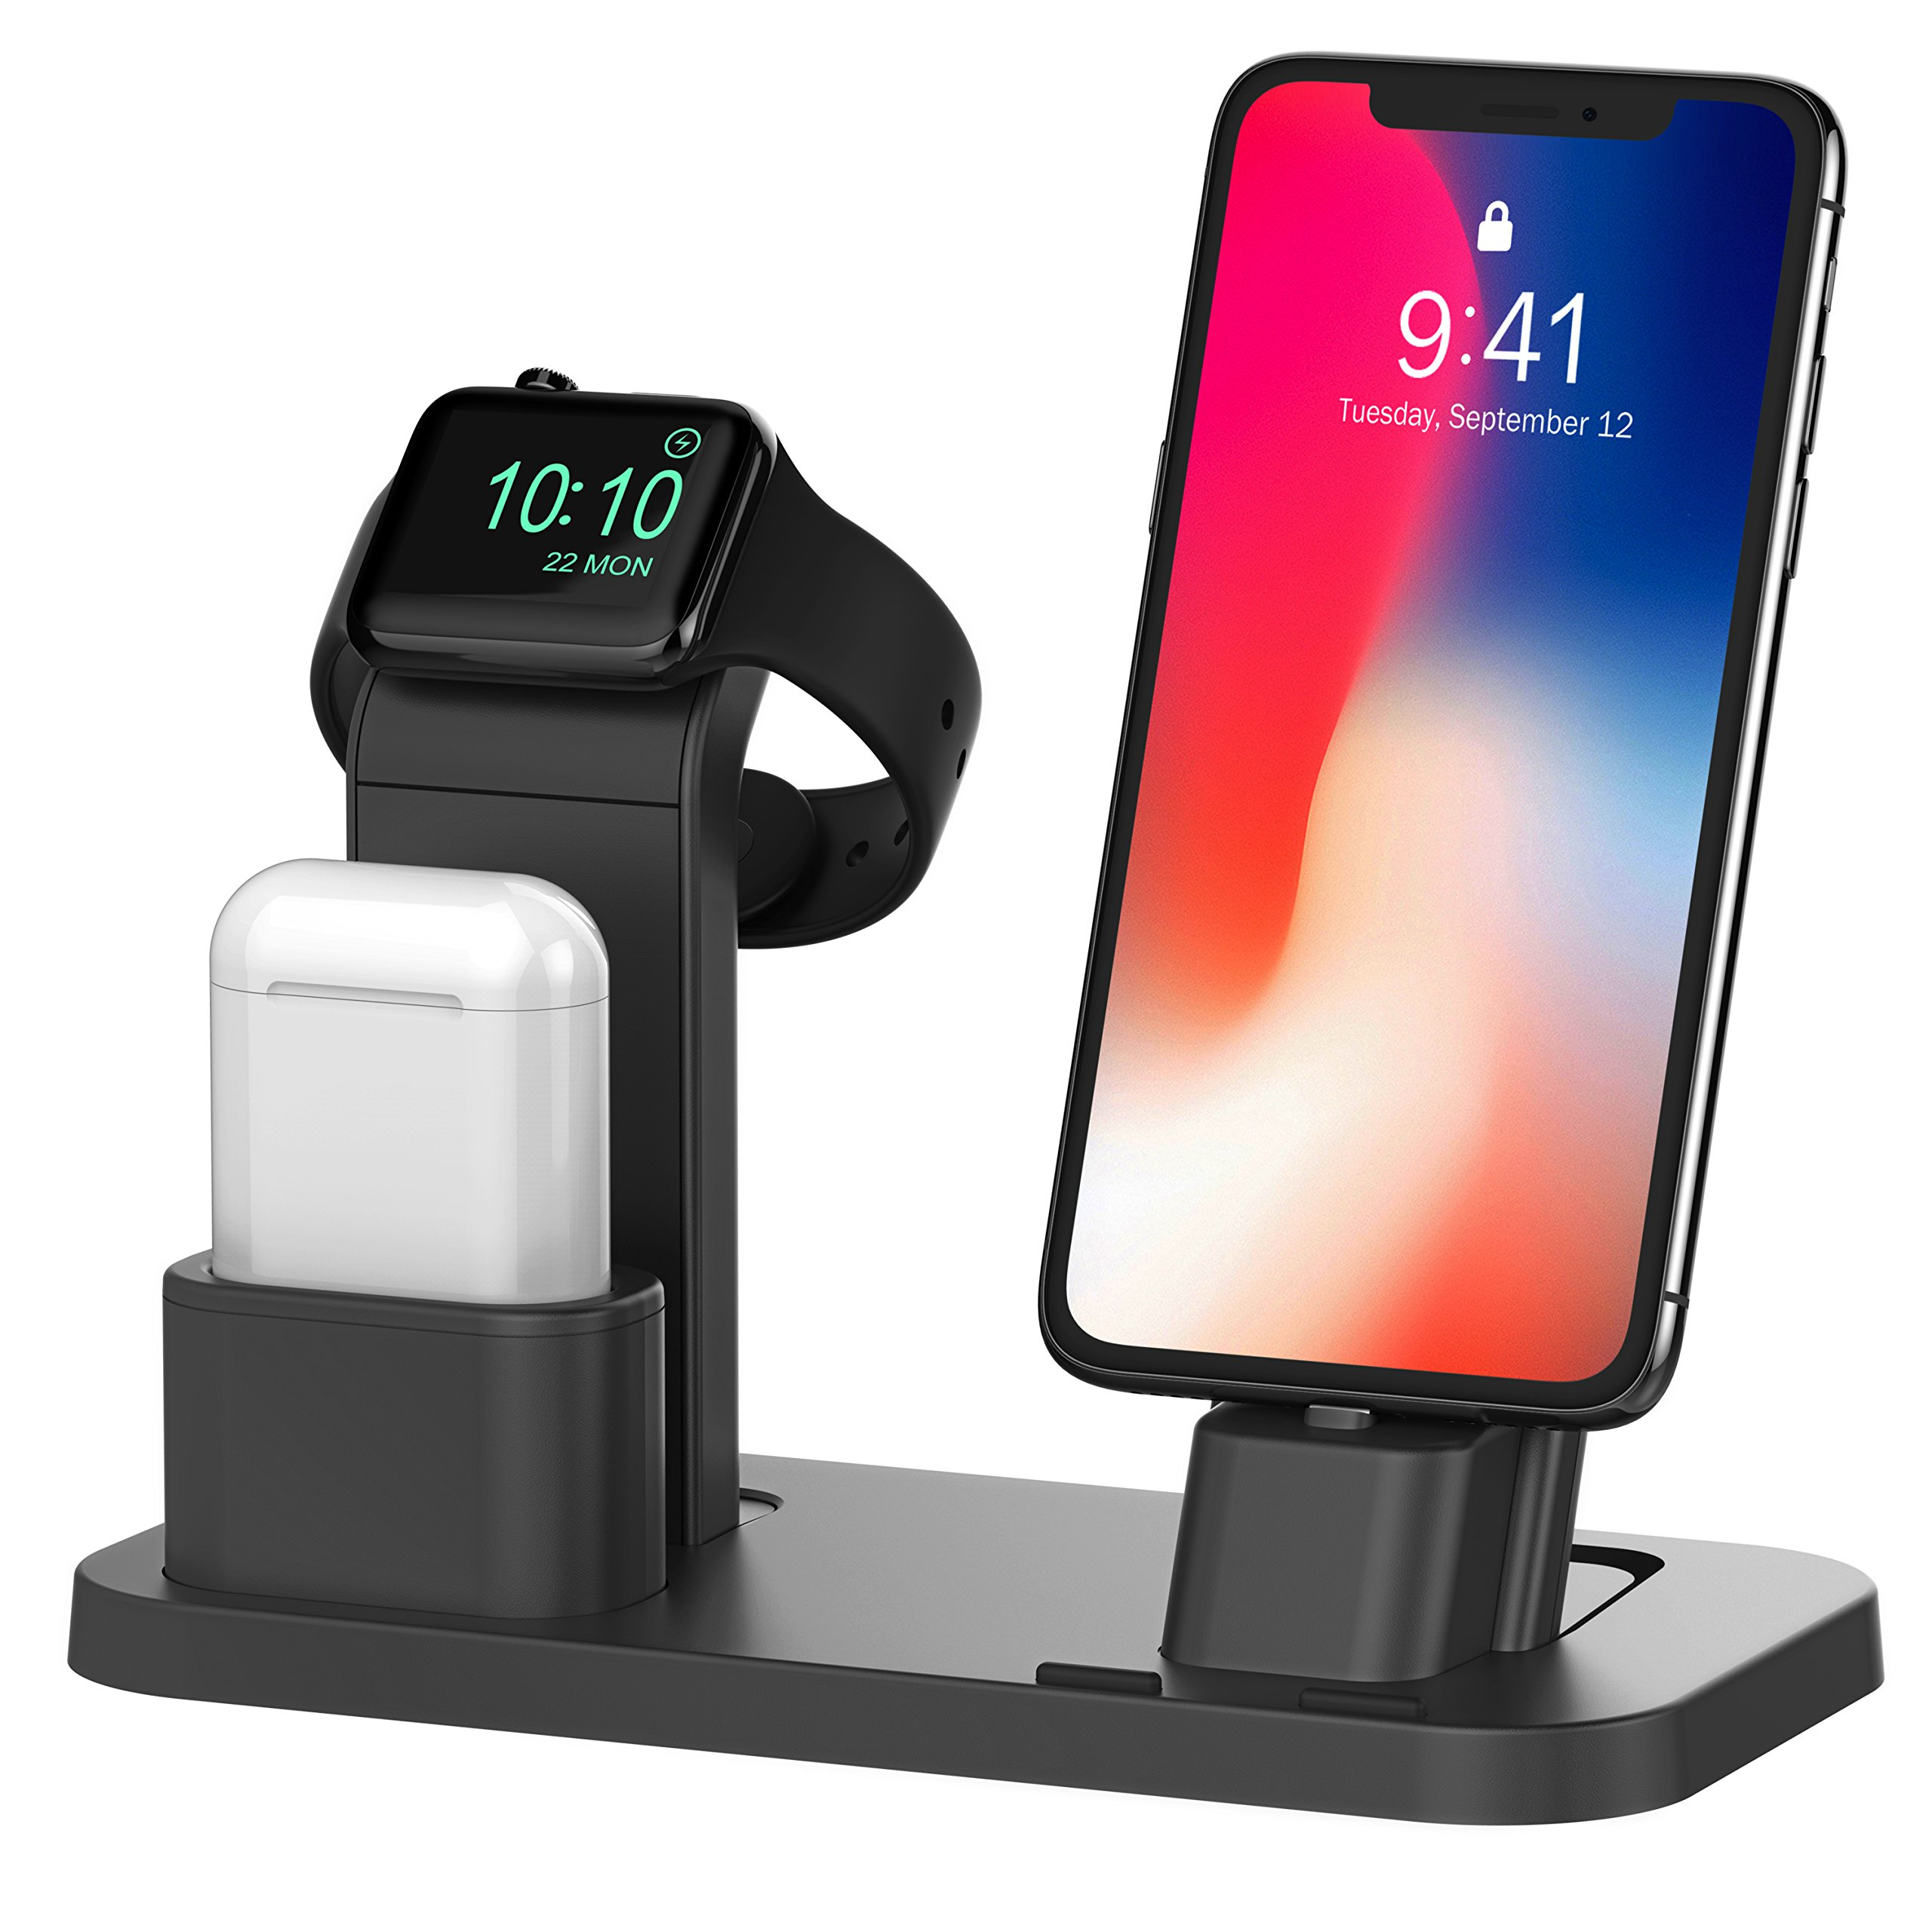 BEACOO Apple Watch Stand, Charging stand Dock Station AirPods Stand Charging Docks Holder, Support Apple Watch NightStand Mode and iPhone X/7/7plus/SE/5s/6S/PLUS with Various Case